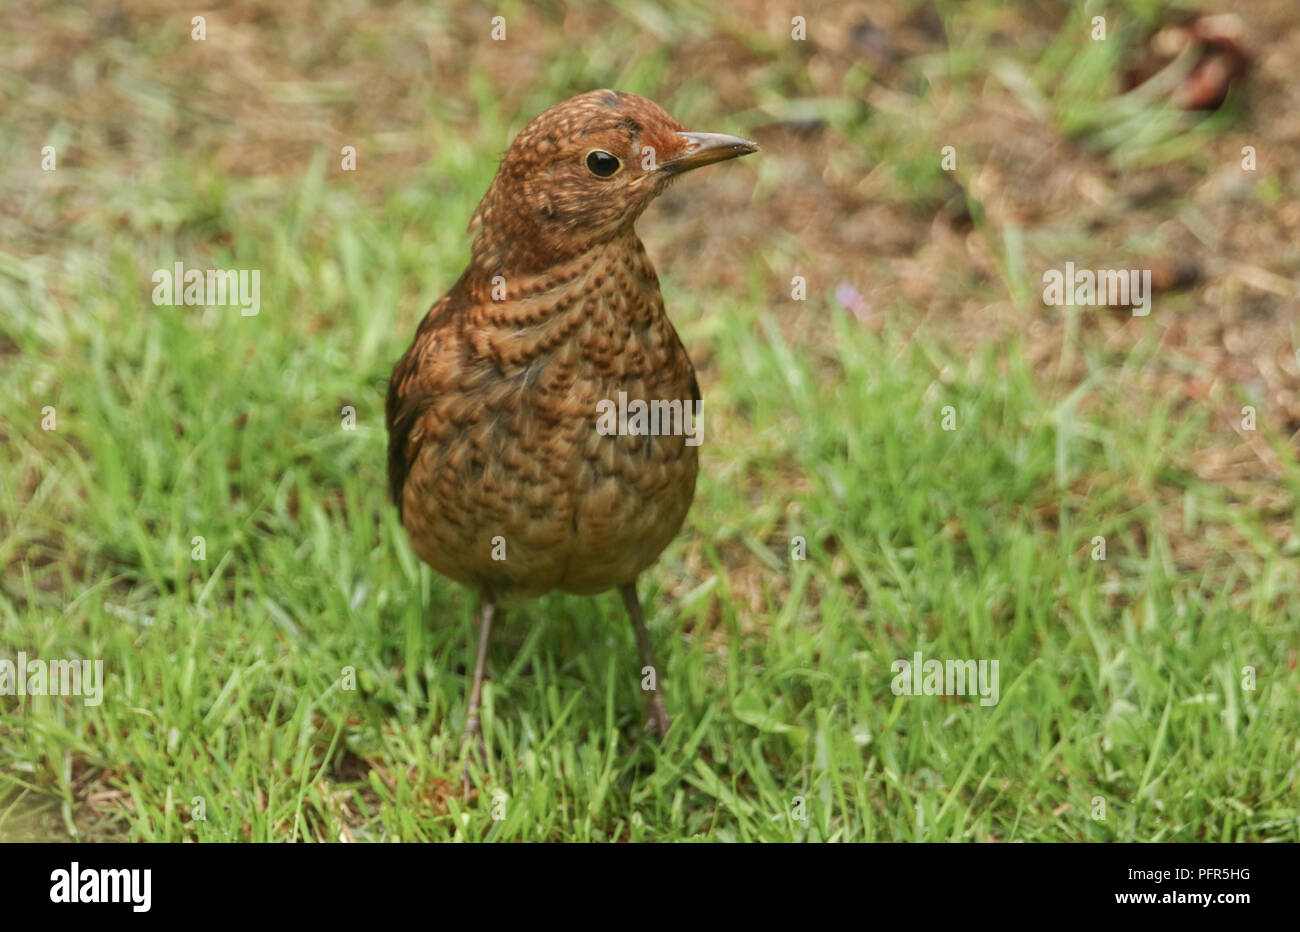 A pretty juvenile Blackbird (Turdus merula) hunting for worms in the grass. - Stock Image